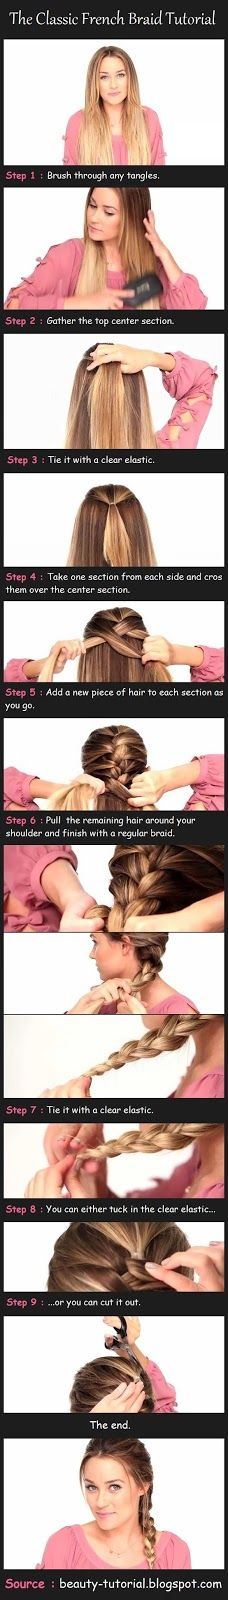 Going to make one center french braind?? Simple trick to add some 'lift' at the crown with light teasing of center, top hair section and securing with an elastic. Start french braiding right under hair held in elsastic.Smart move!